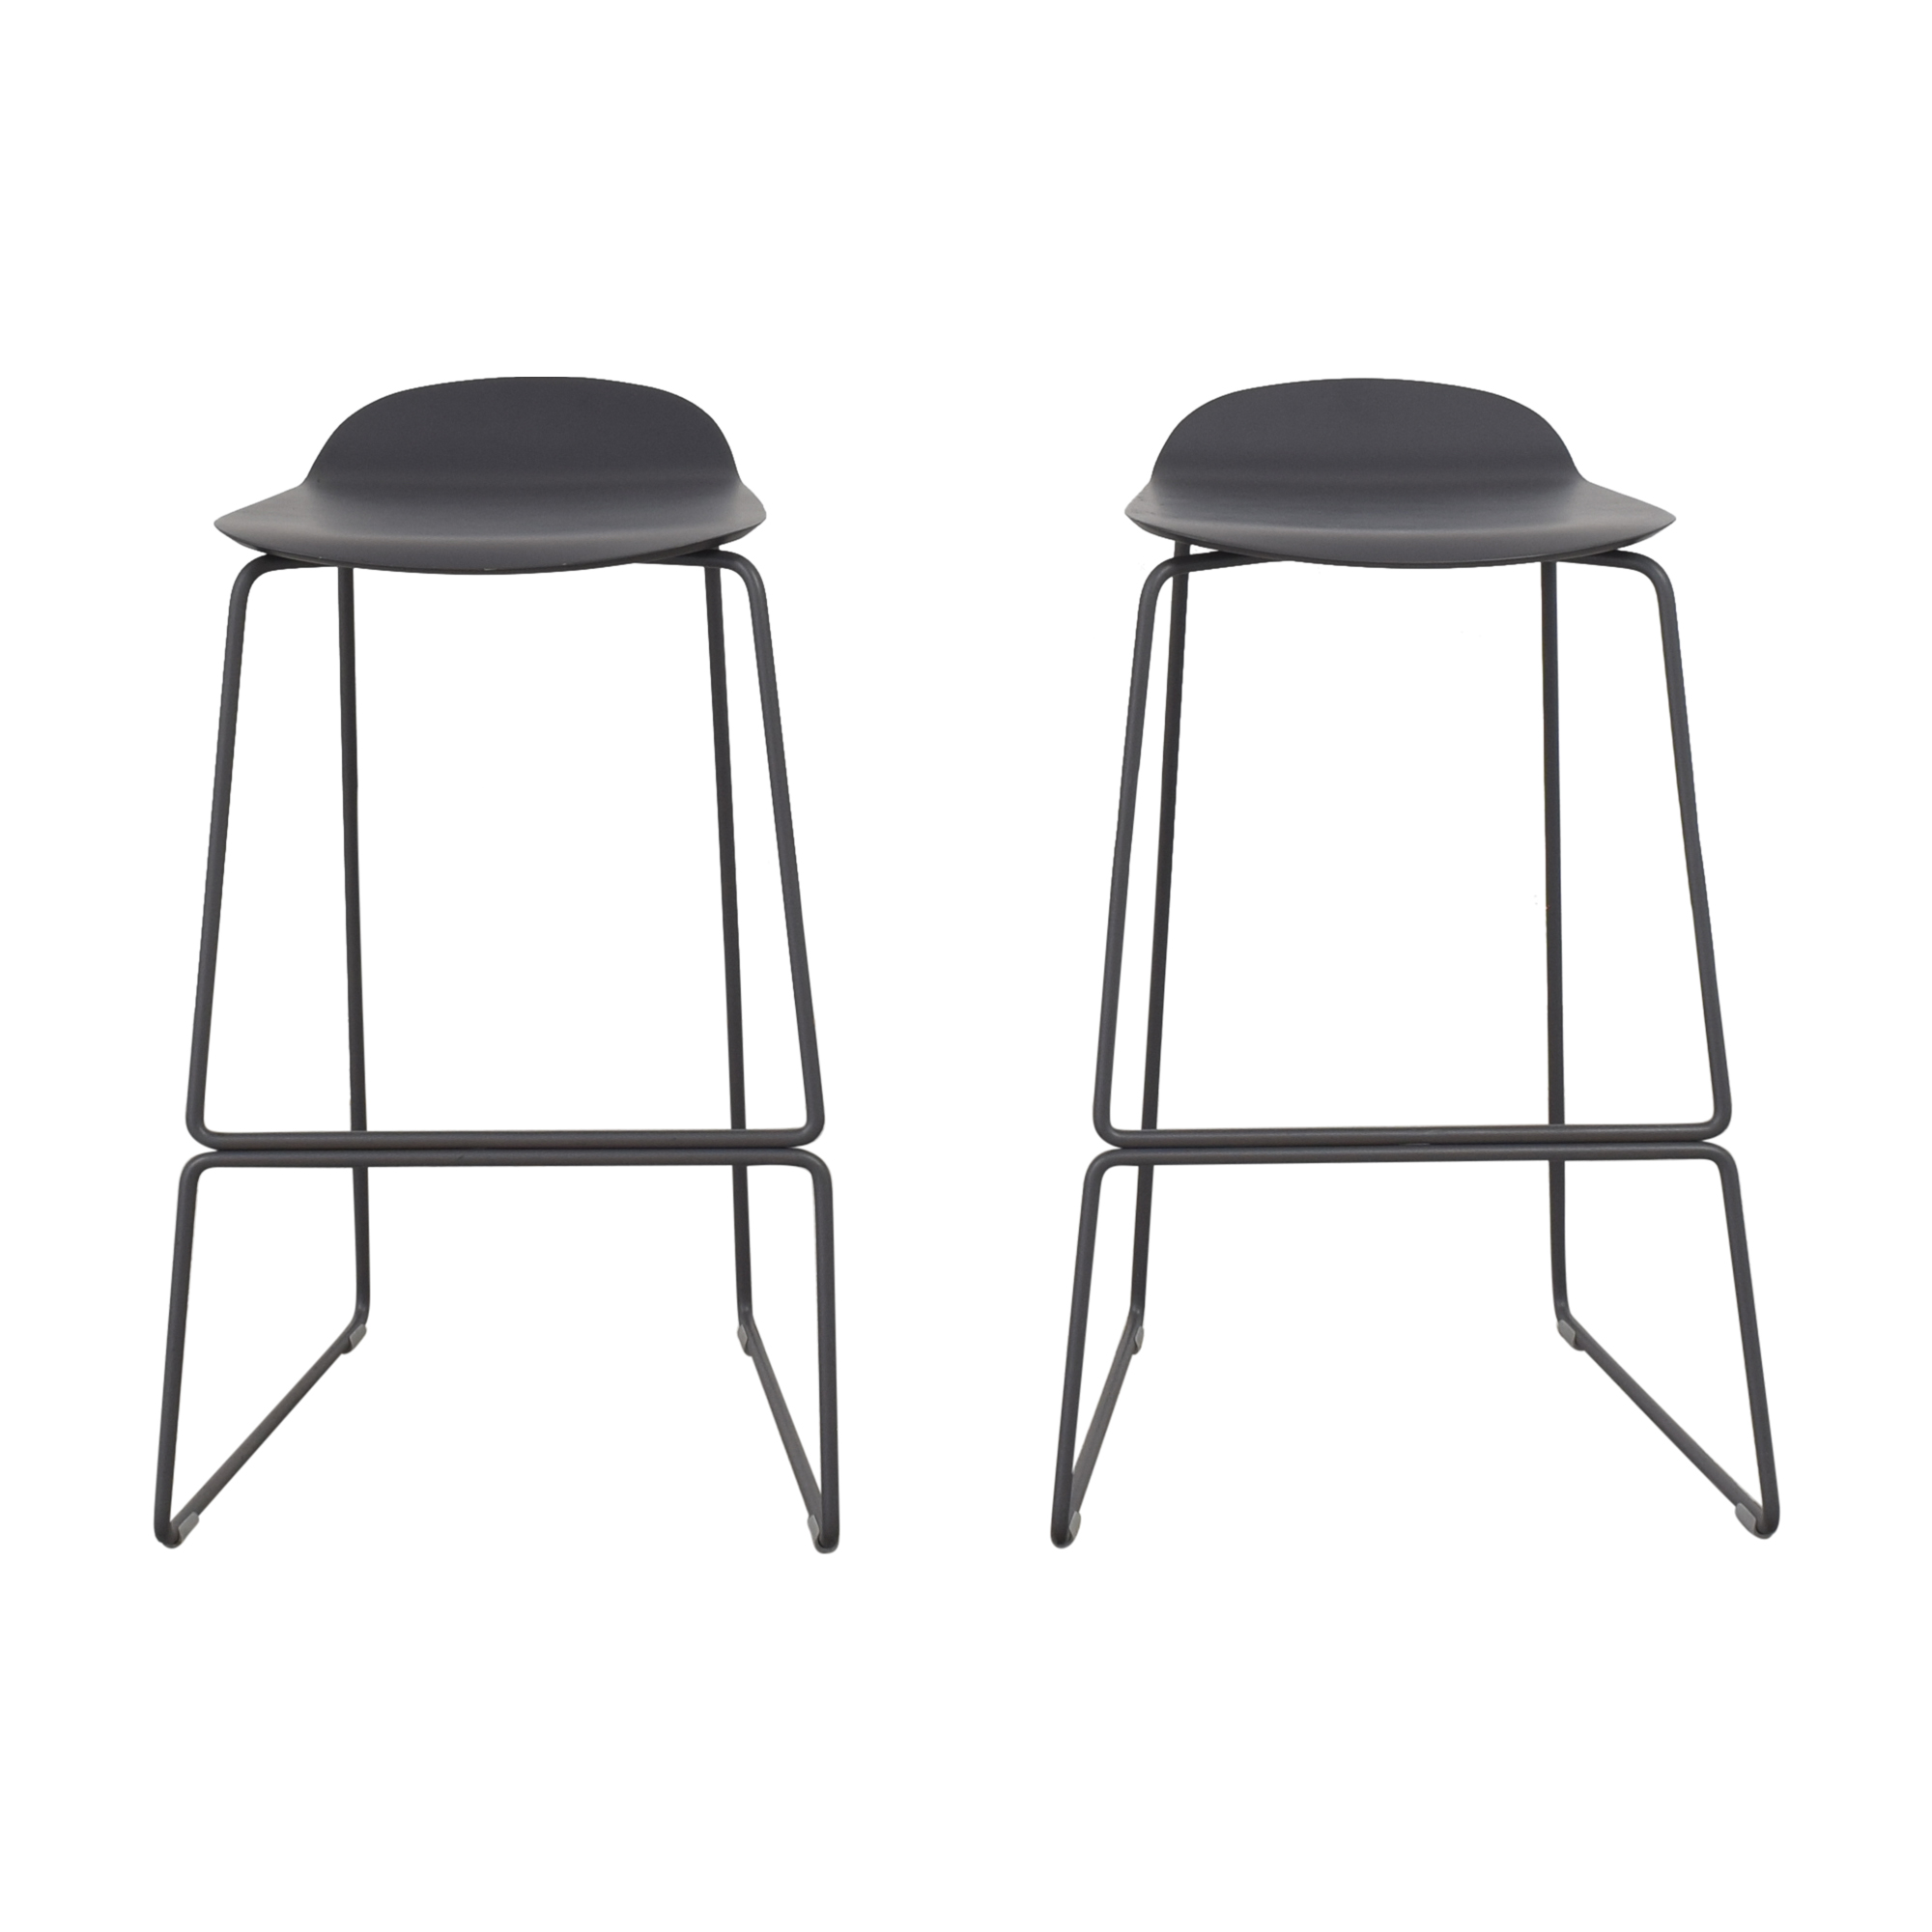 Poppin Poppin Upbeat Stools discount